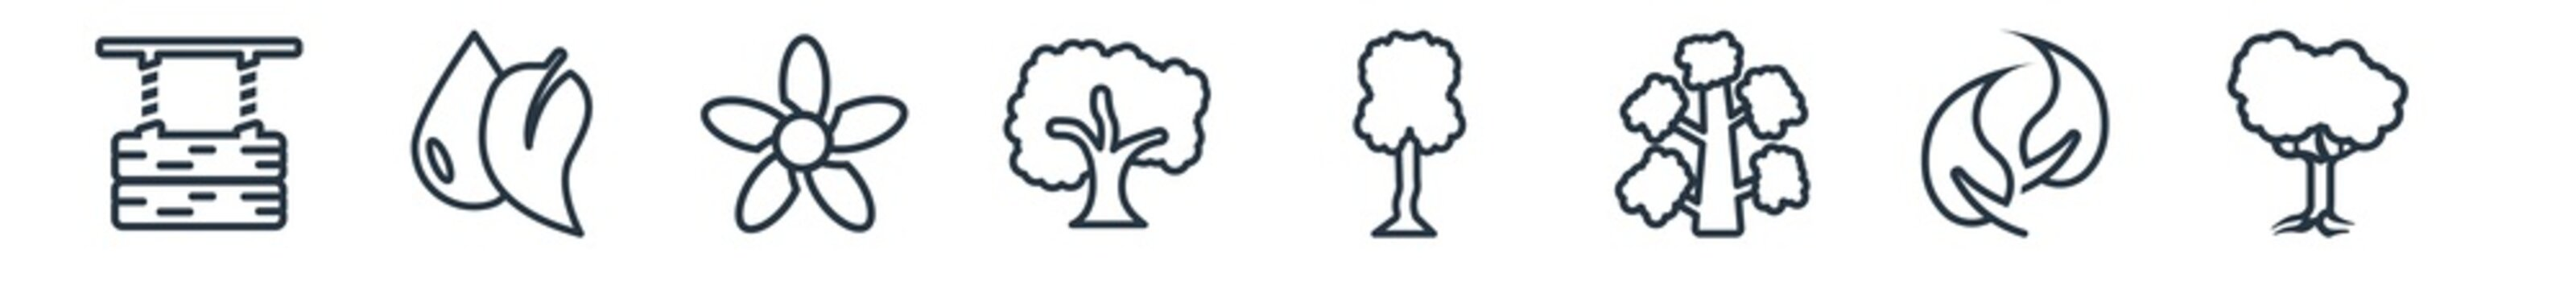 linear set of nature outline icons. line vector icons such as wood board, leaf and drop, jonquil, sycamore tree, honey-locust tree, black locust tree vector illustration.